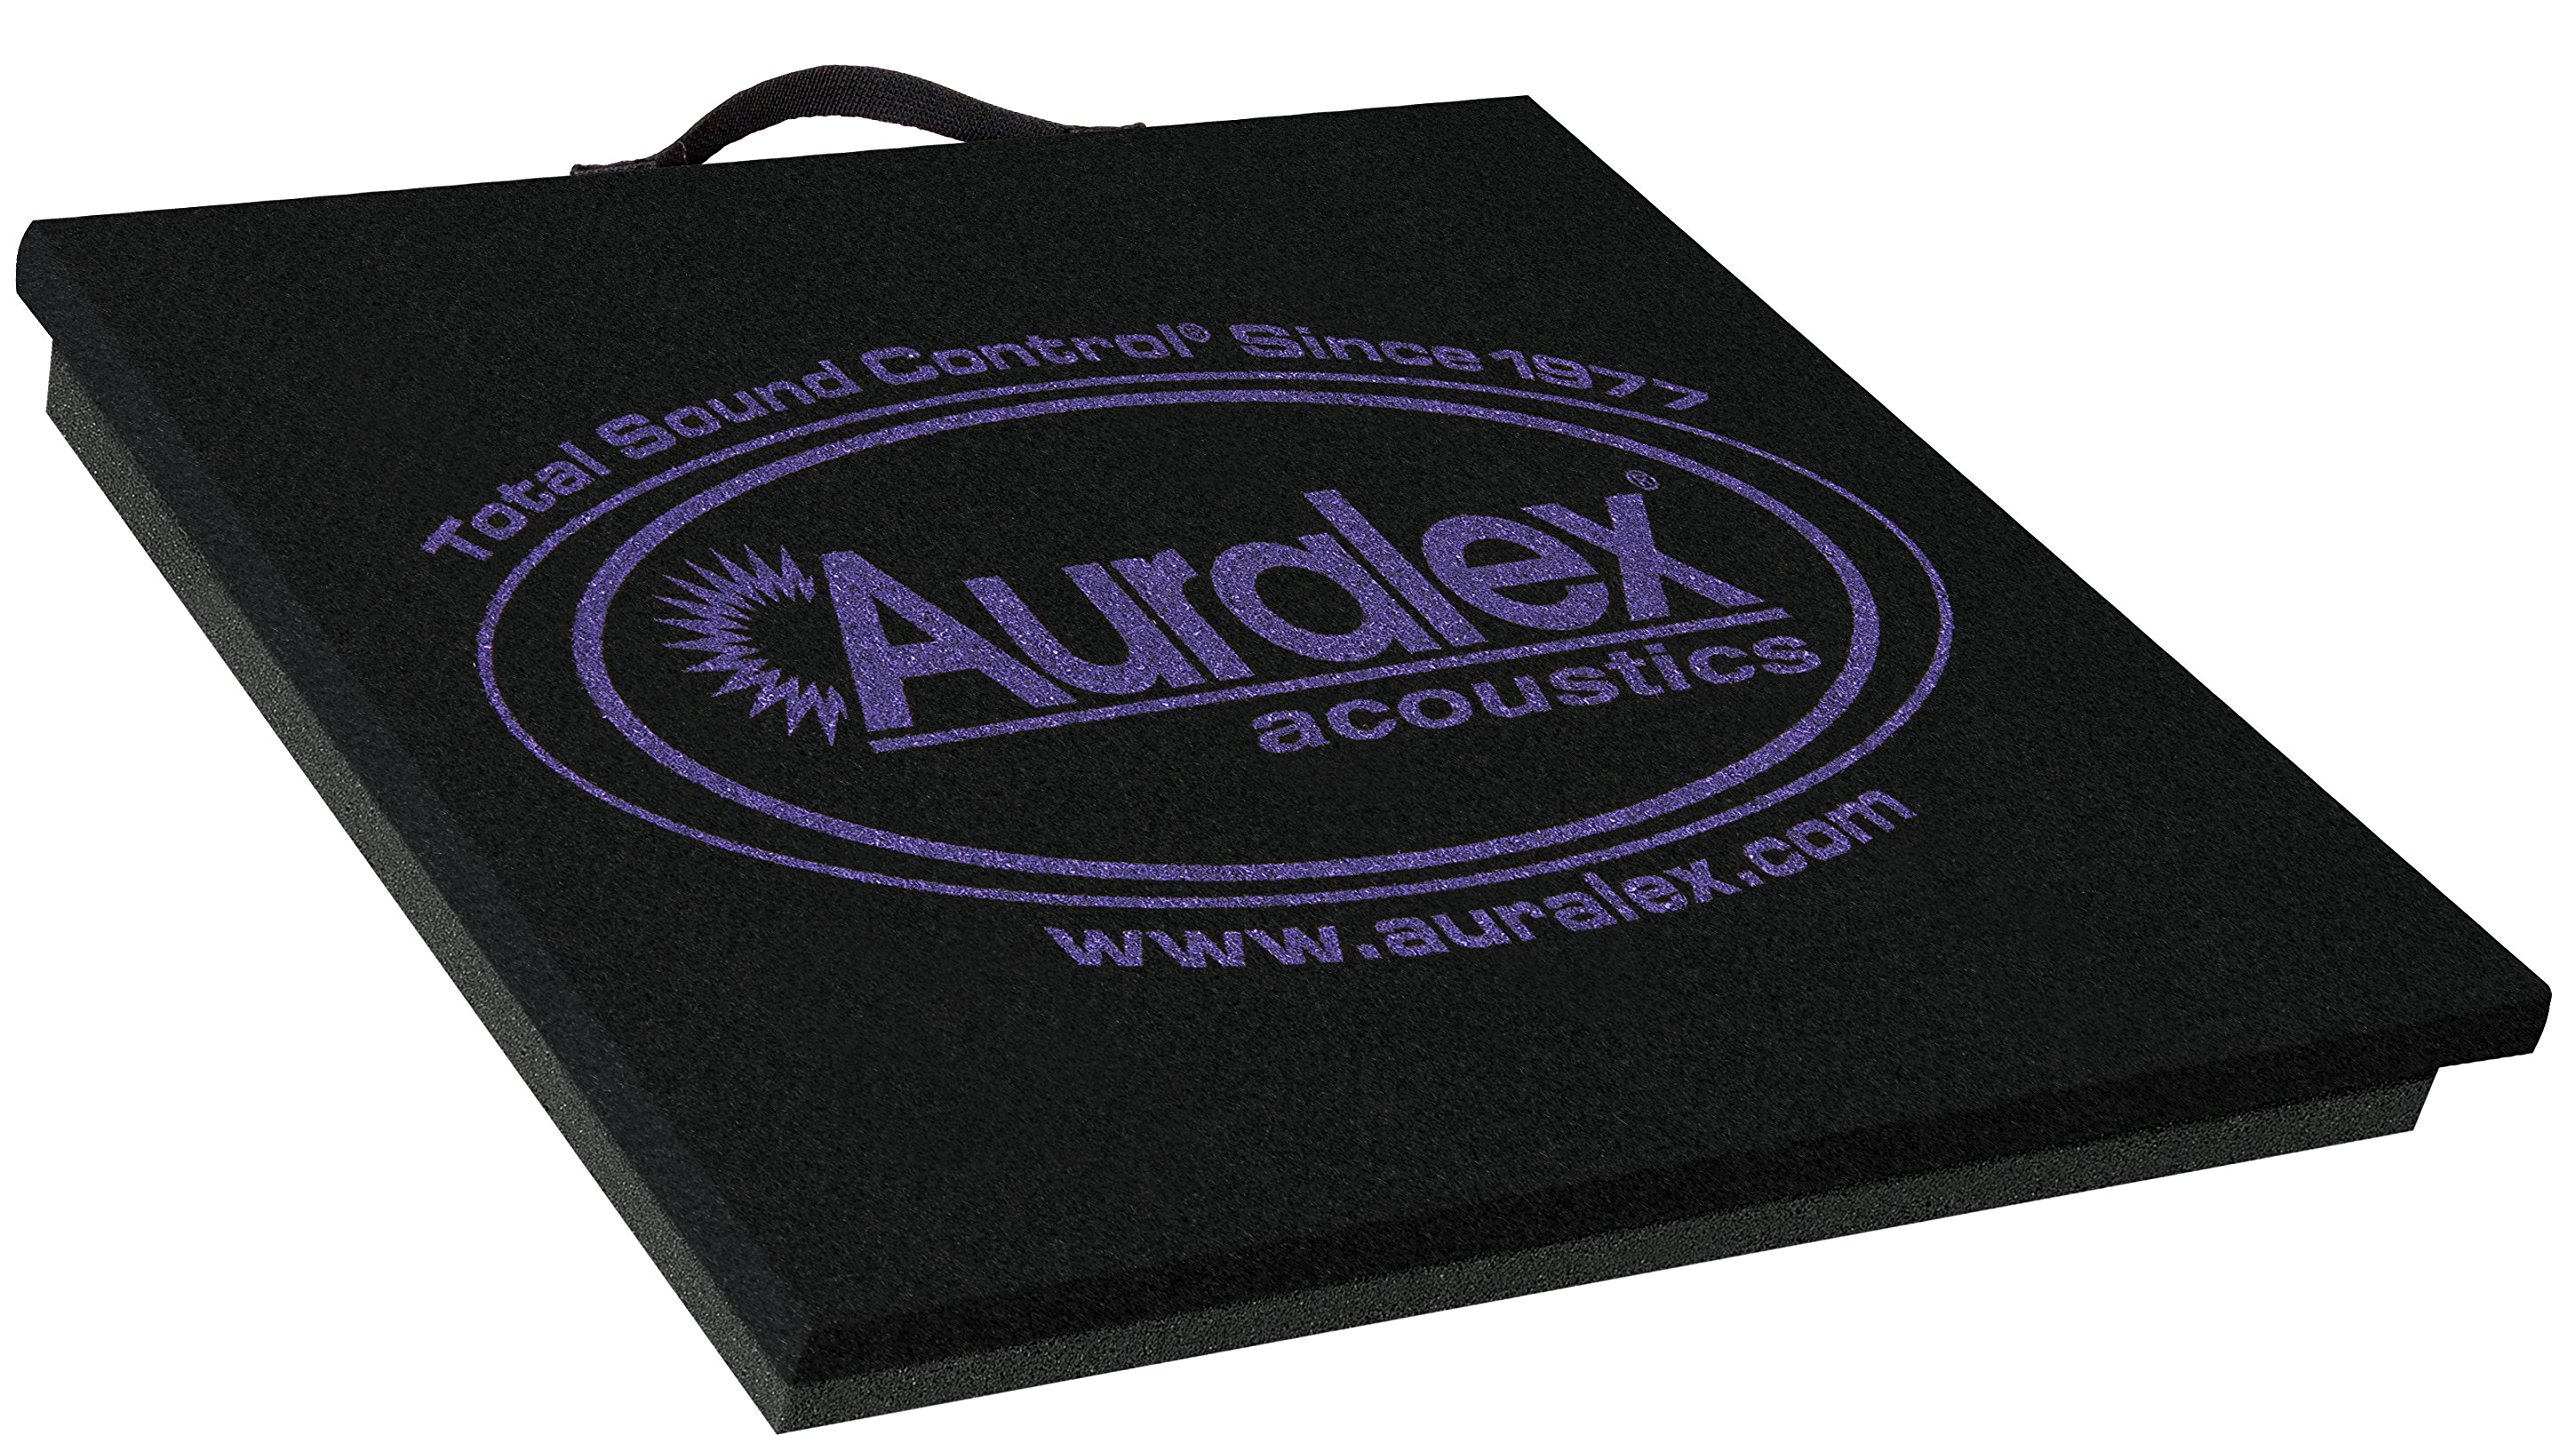 Auralex Acoustics BabyGramma v2 Isolation Platform for Amplifers, 1.75 x 15 x 15-Inches by Auralex Acoustics